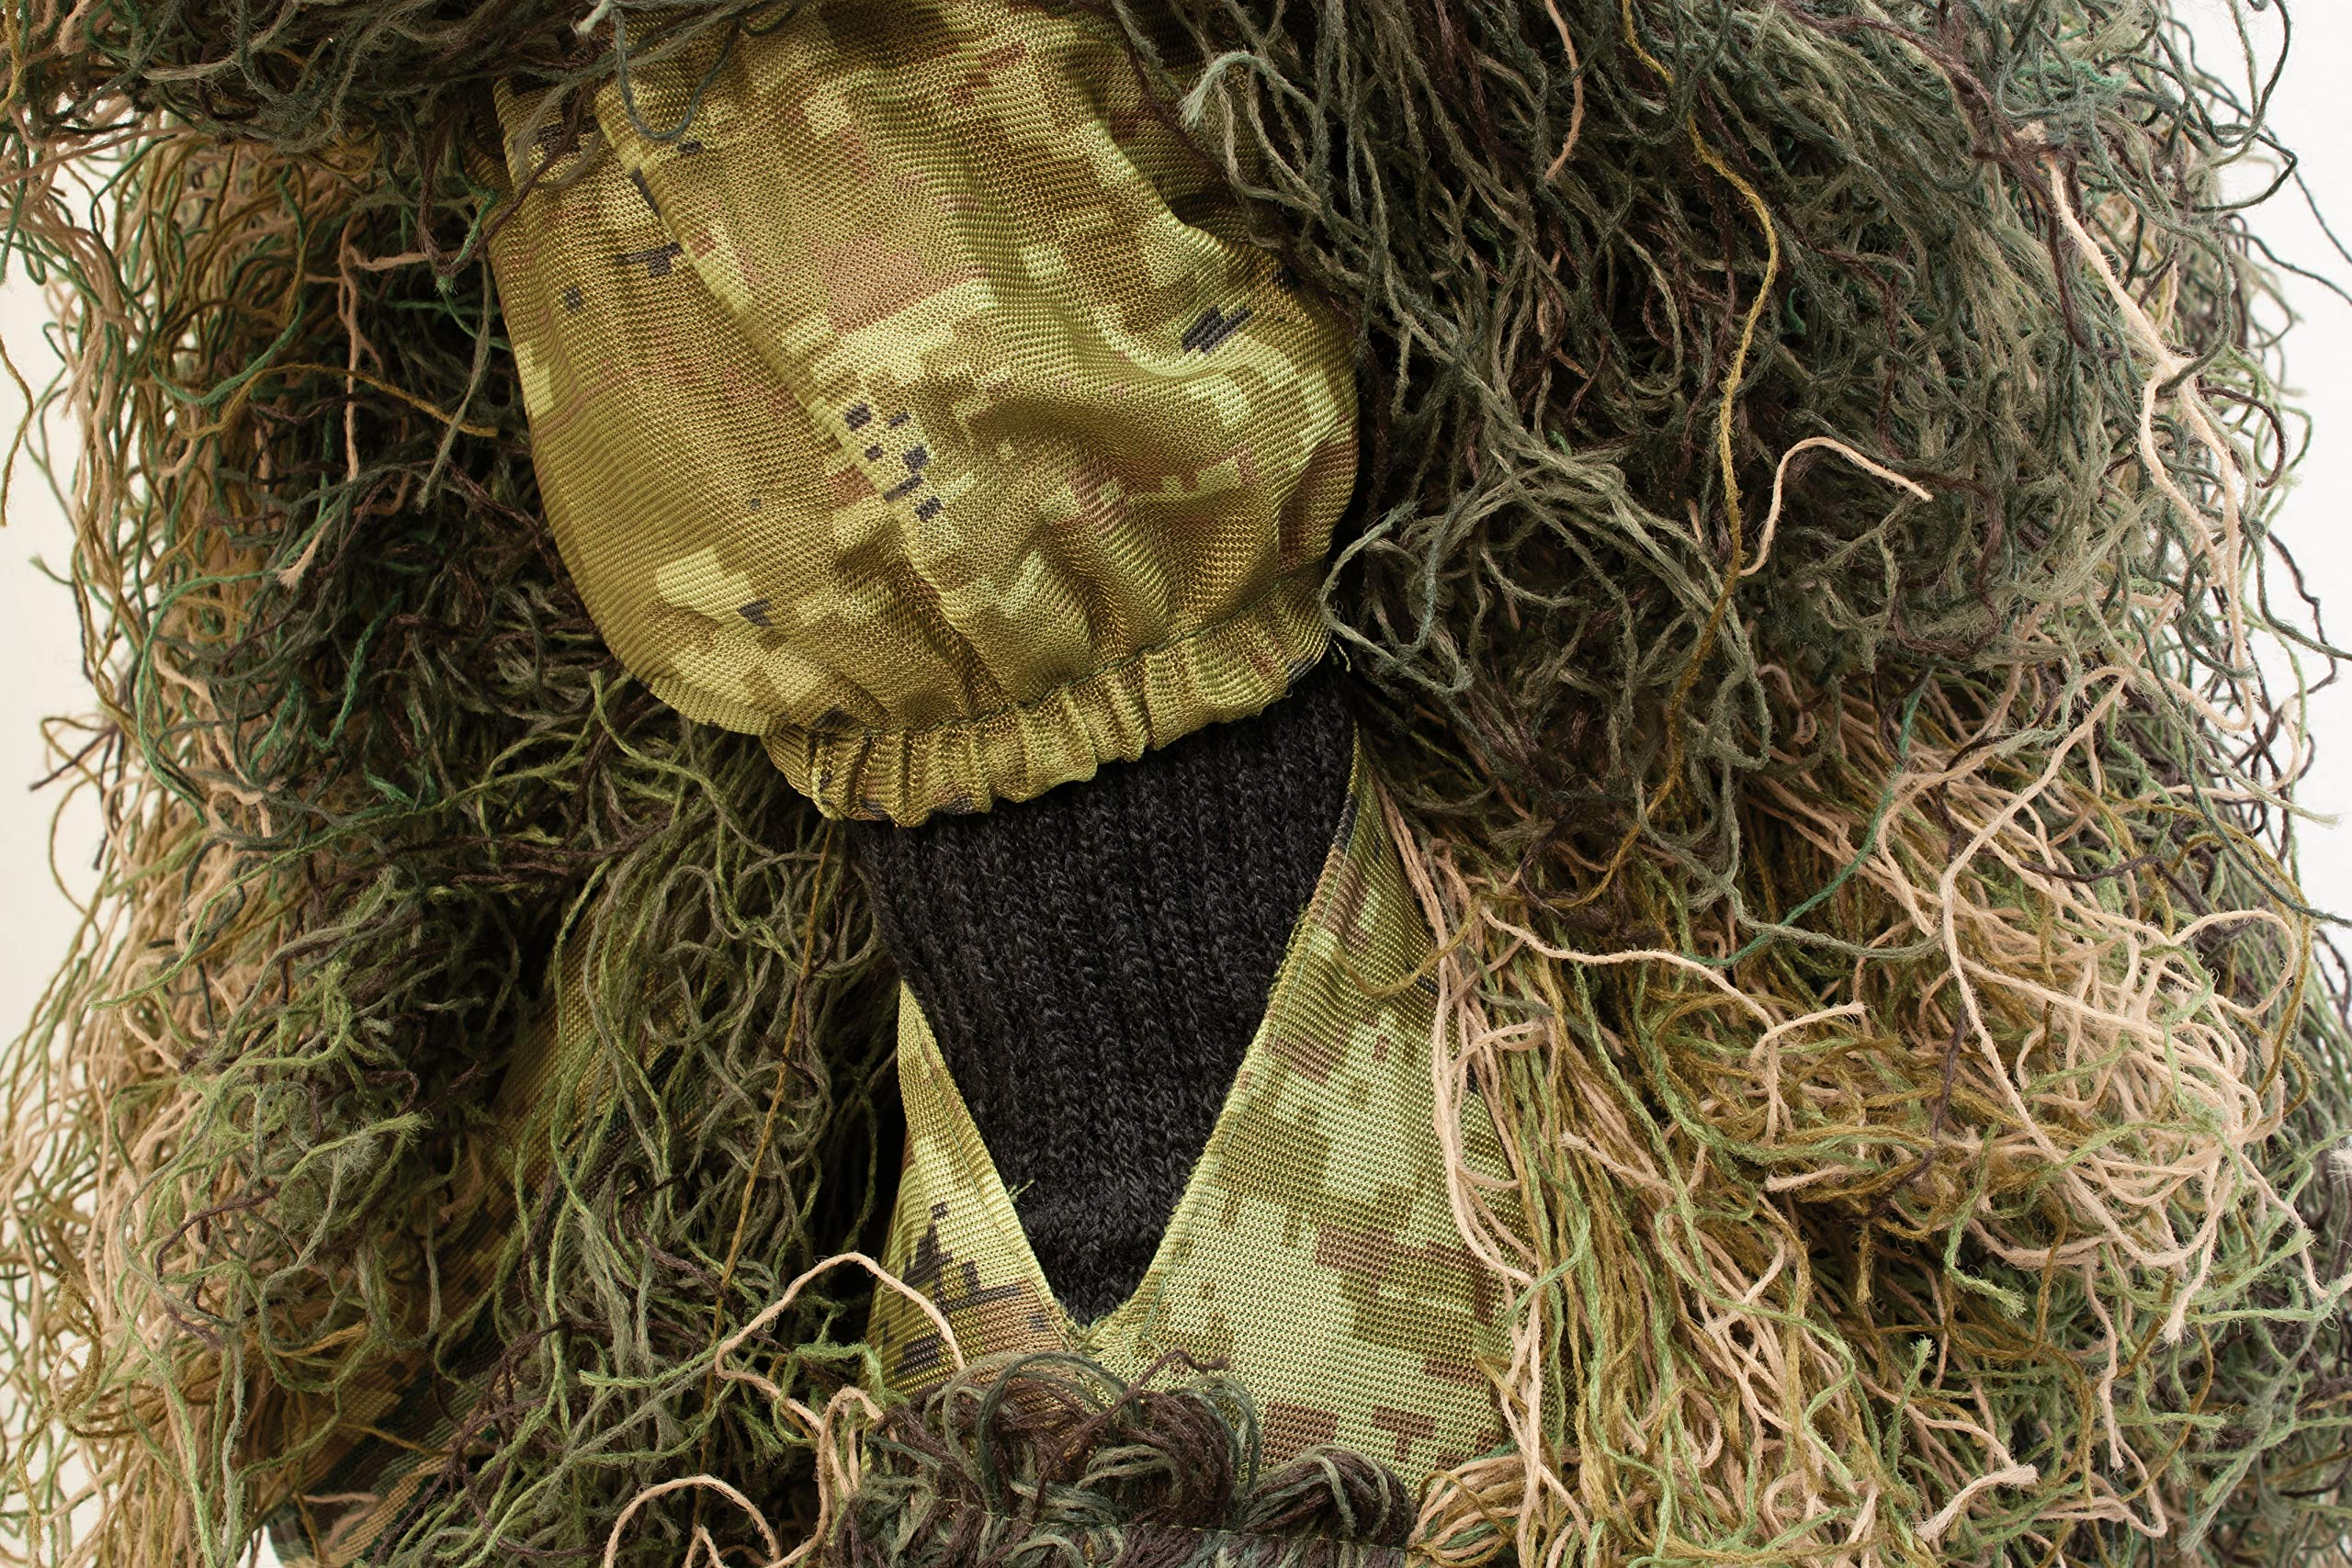 Red Rock Outdoor Gear - Ghillie Suit by Red Rock Outdoor Gear (Image #7)